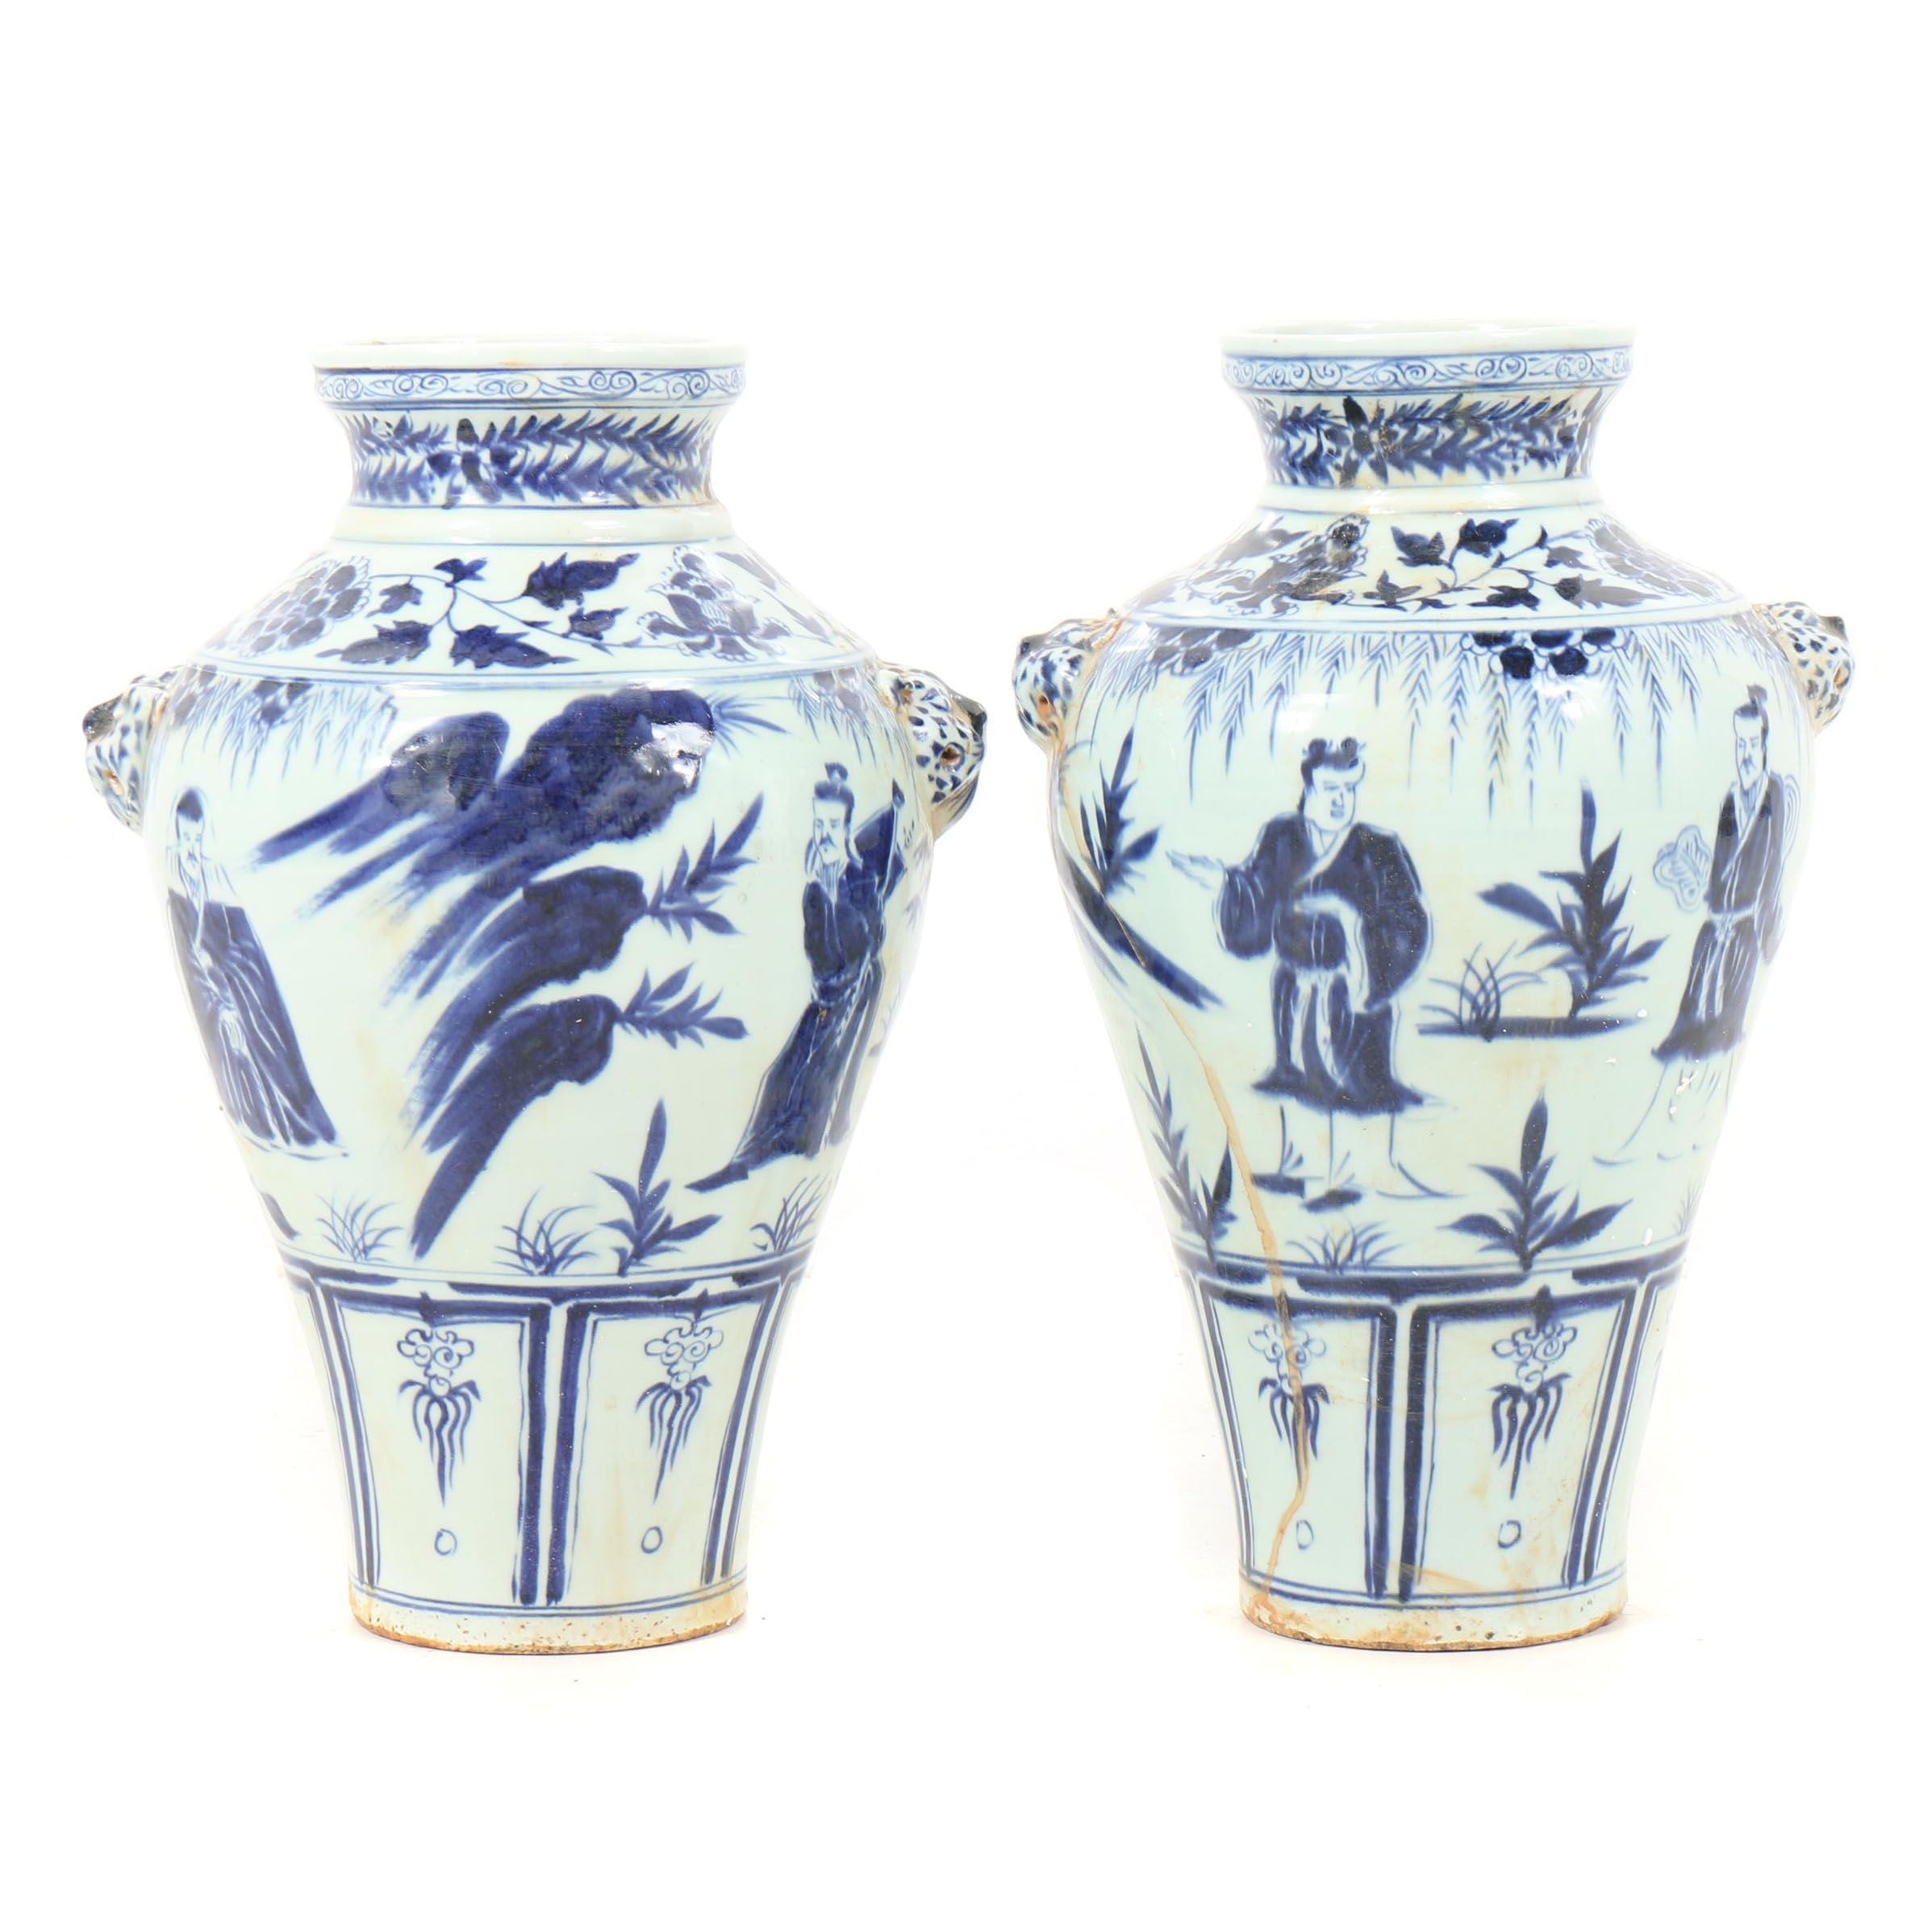 Chinese Blue and White Vases with Tiger's Head Handles